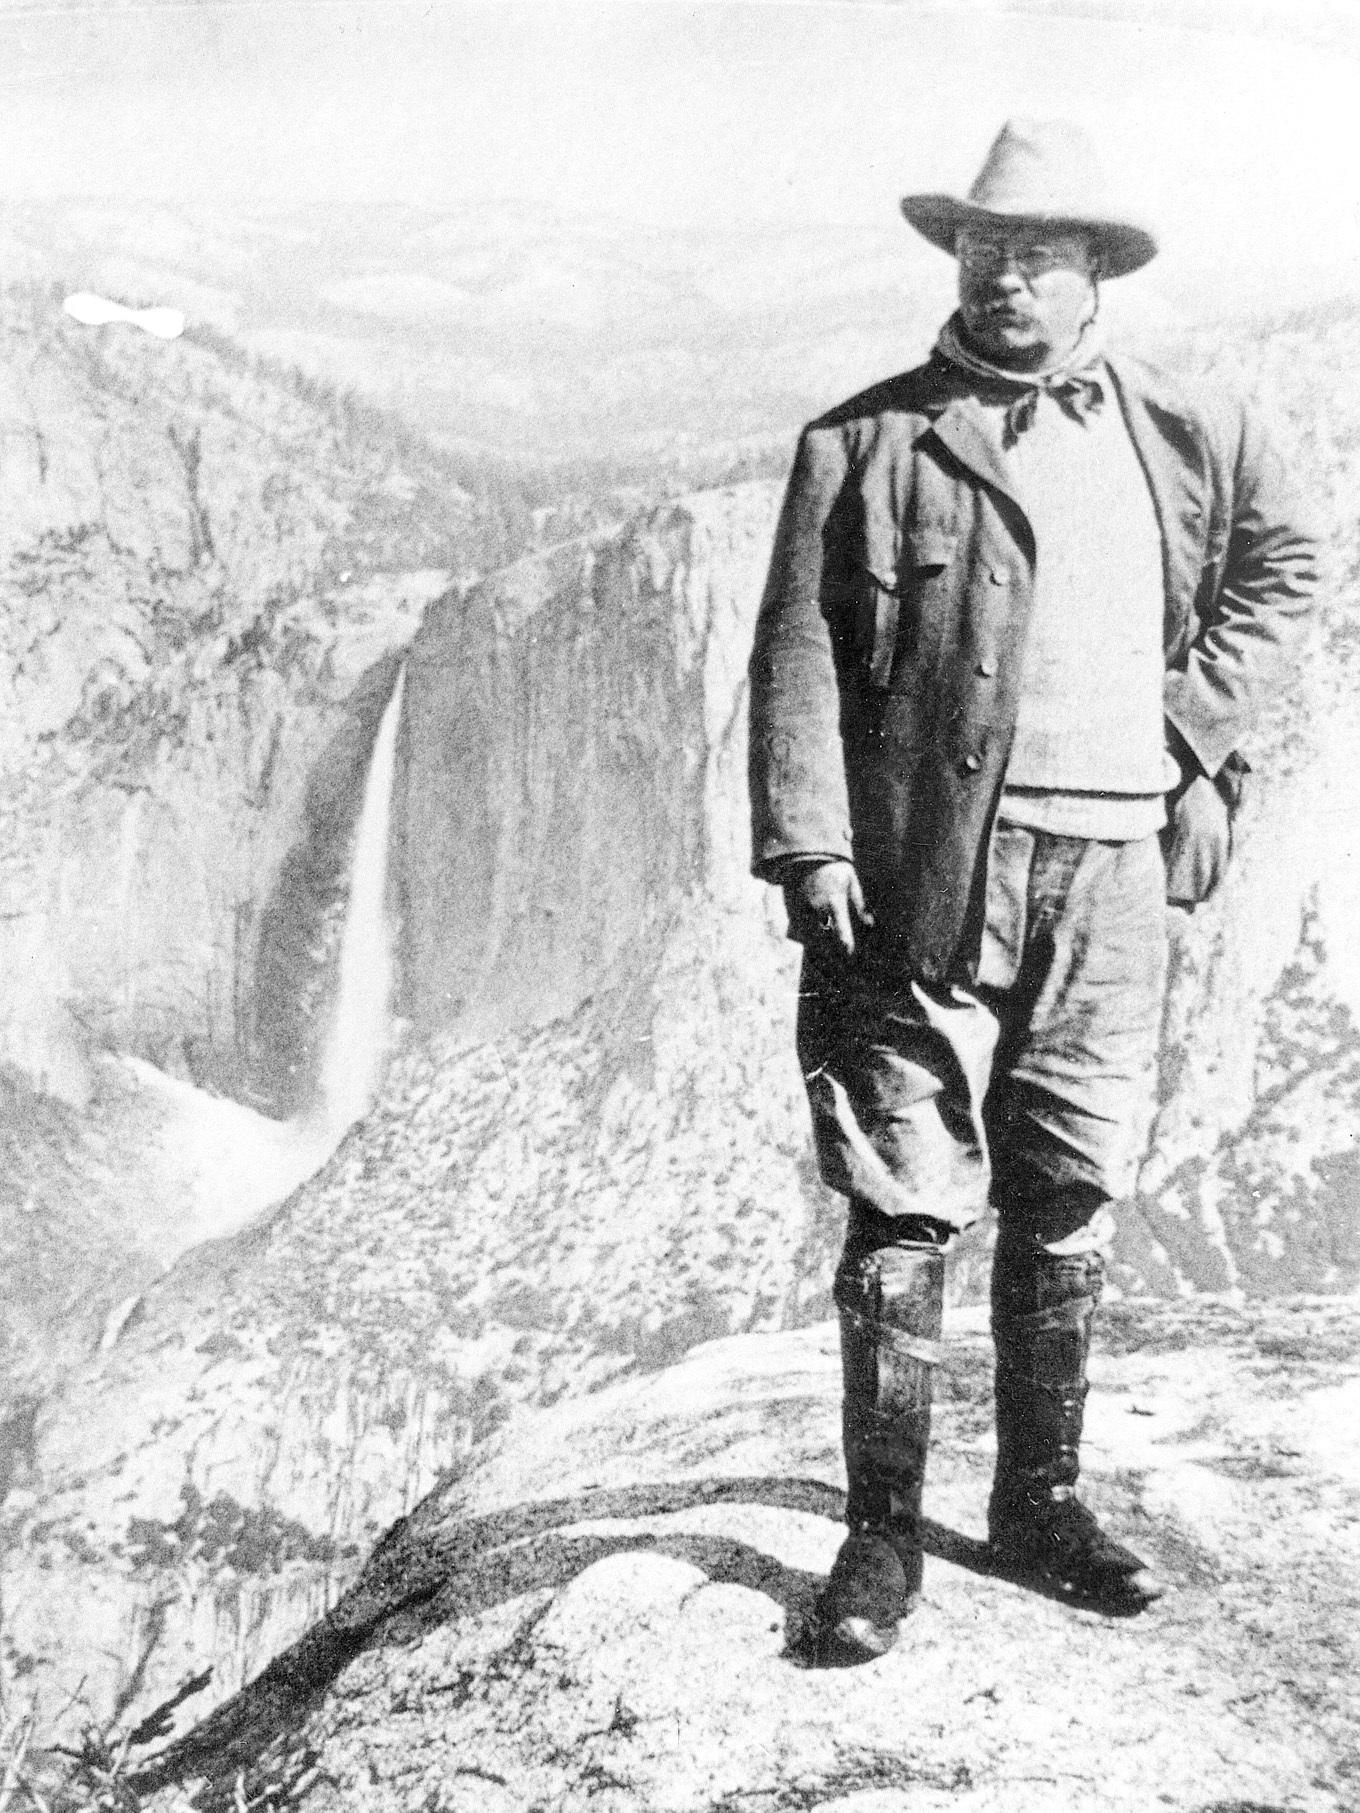 Theodore Roosevelt is not just remembered as as one of the founding members of Boone and Crockett. History has shown him to be one of North America's great conservation heroes, leaving a legacy of more than 230 million acres of public land established during his presidency. He relentlessly put conservation first, insistent that natural resources should be managed rather than exploited.